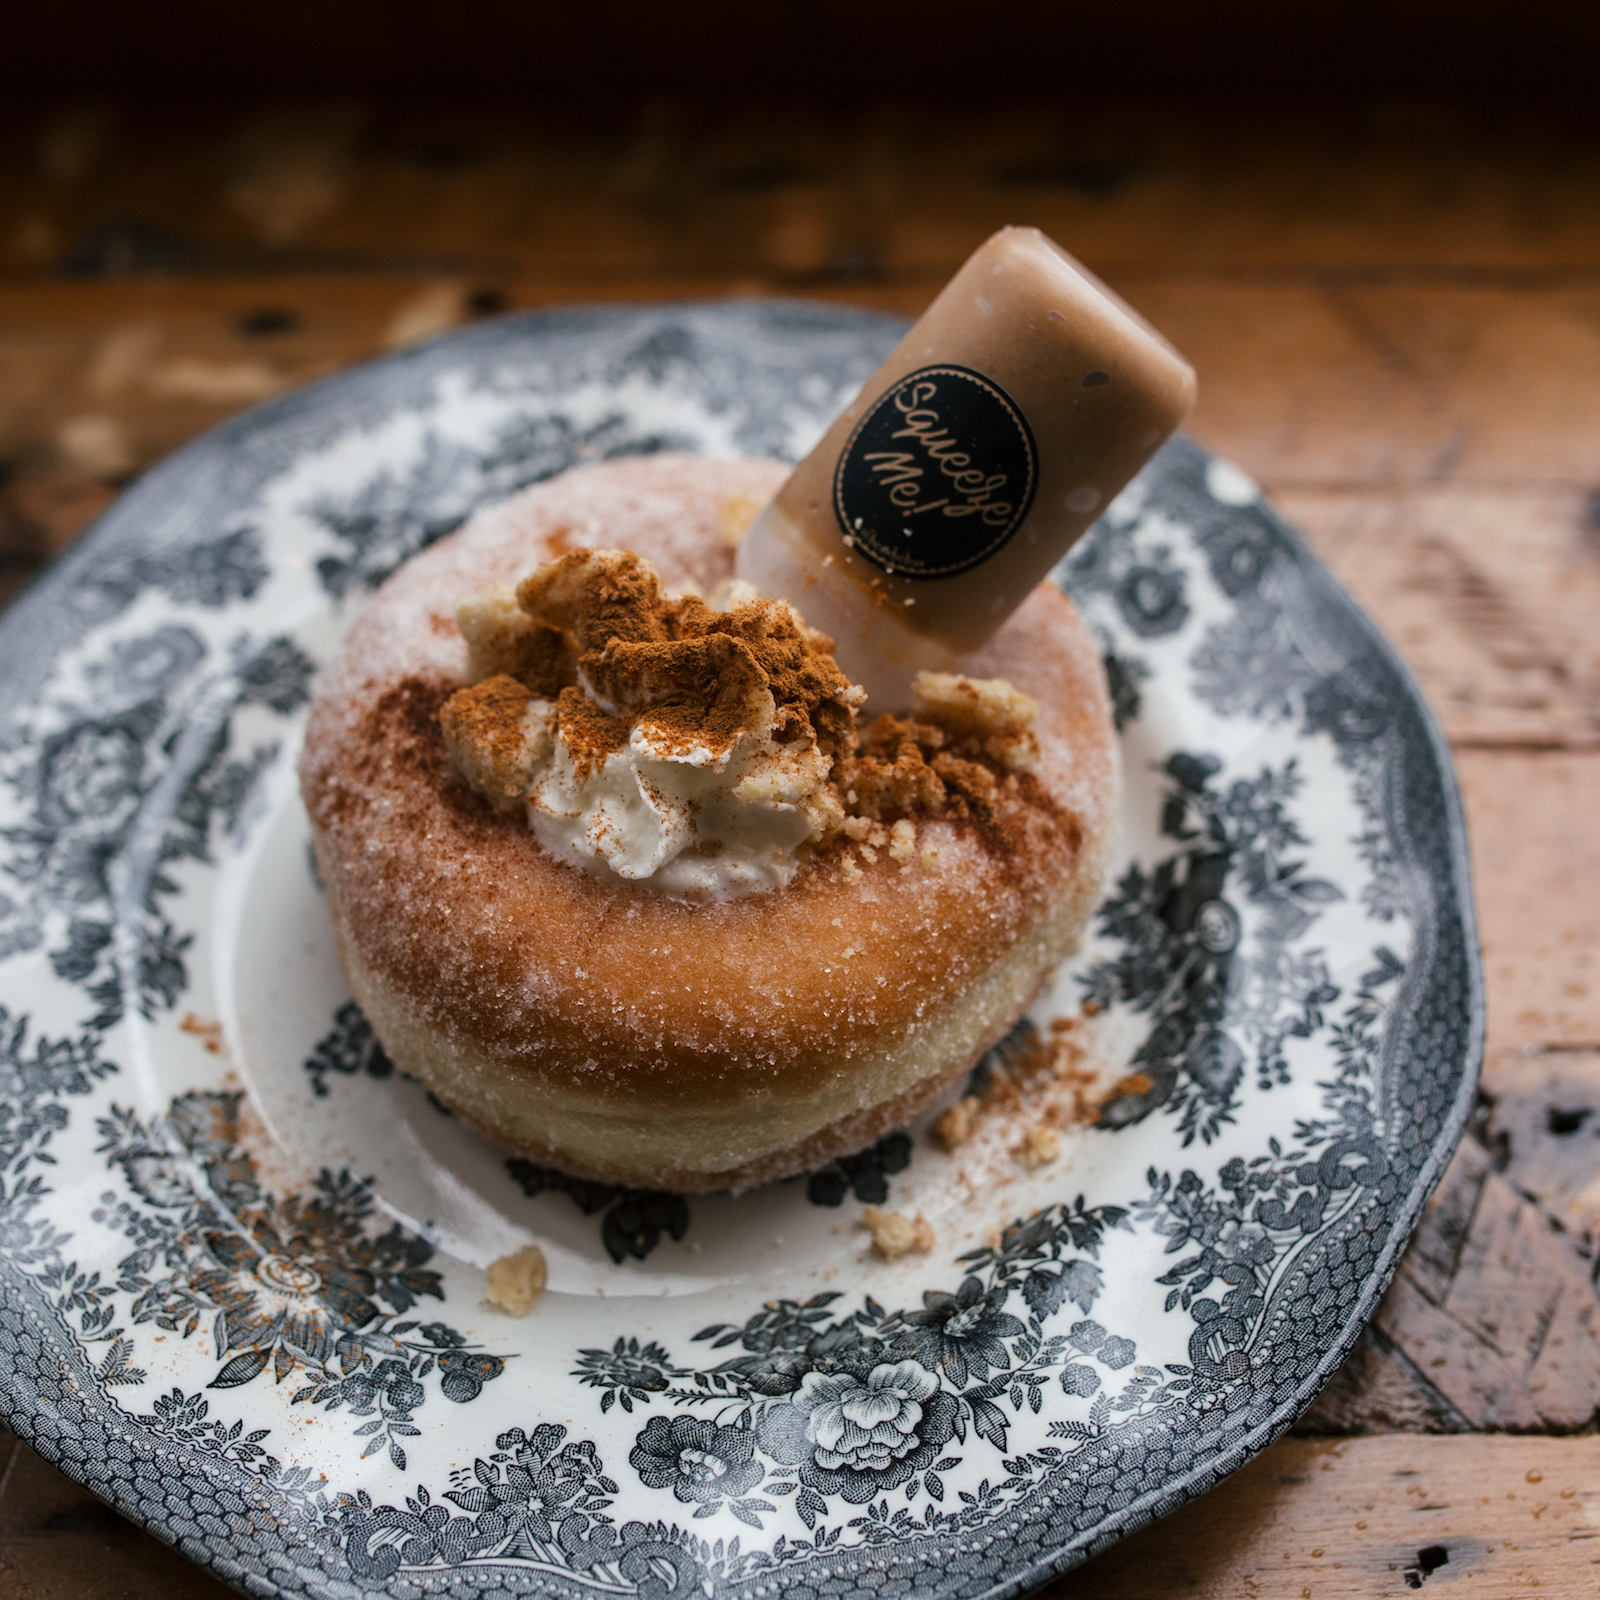 Donut, bombolini | Courtesy of Bar Siena